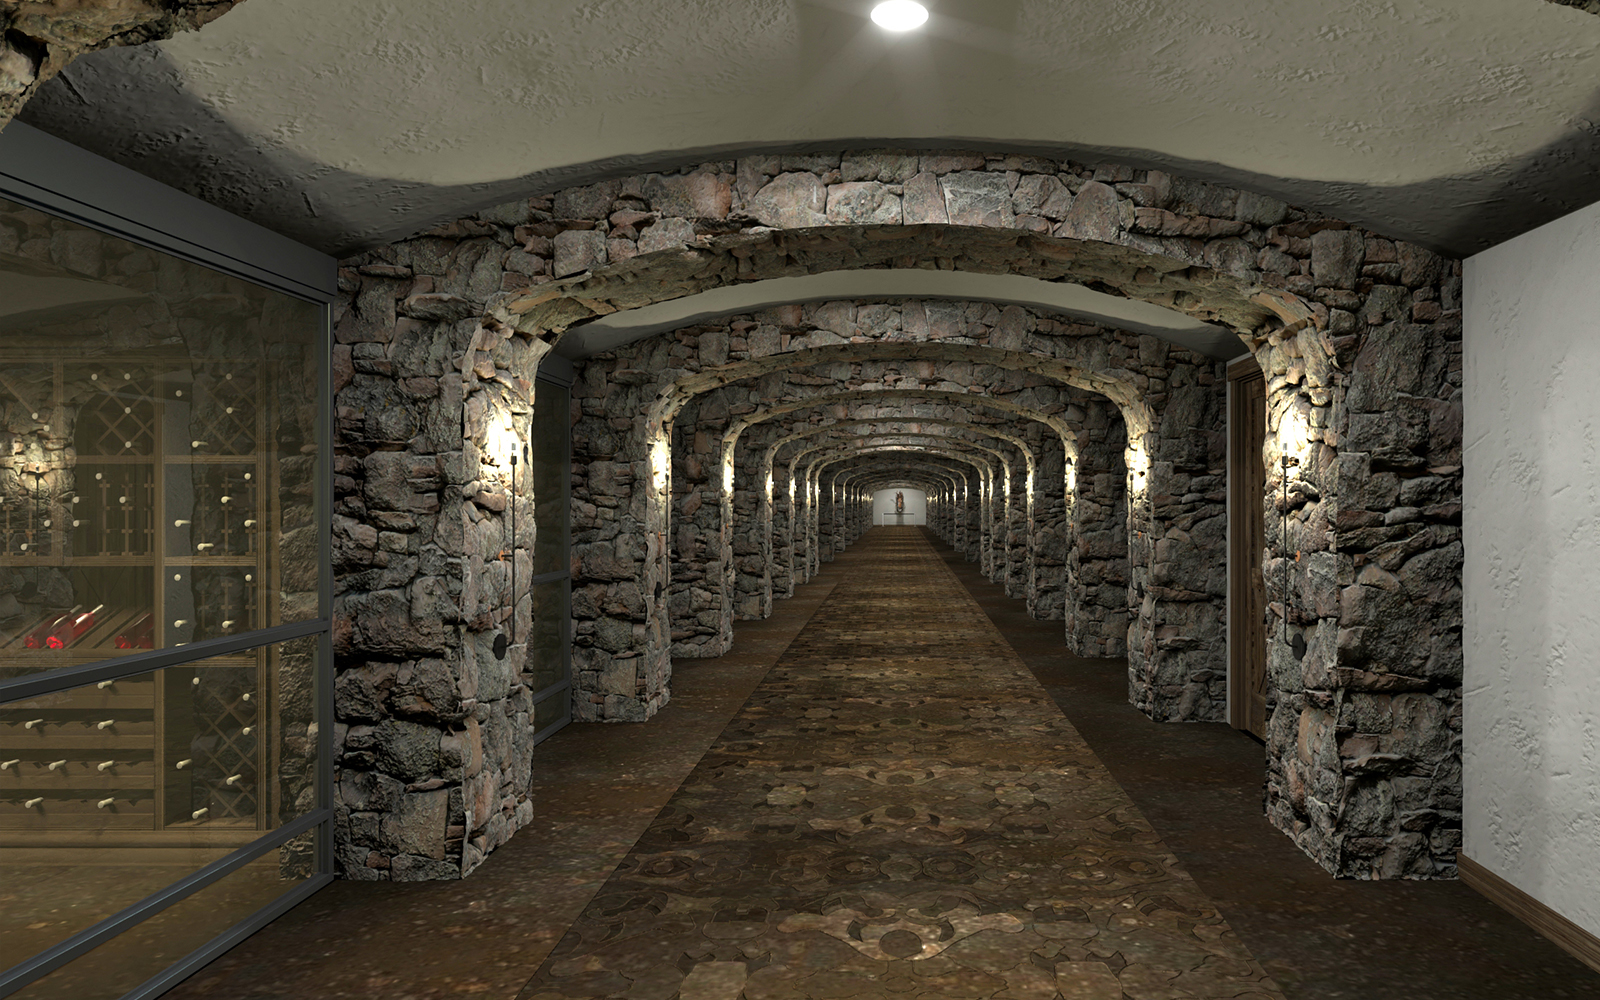 The long hall of the Brush Creek Cellar where thousands of rare and vintage wine bottles can be found